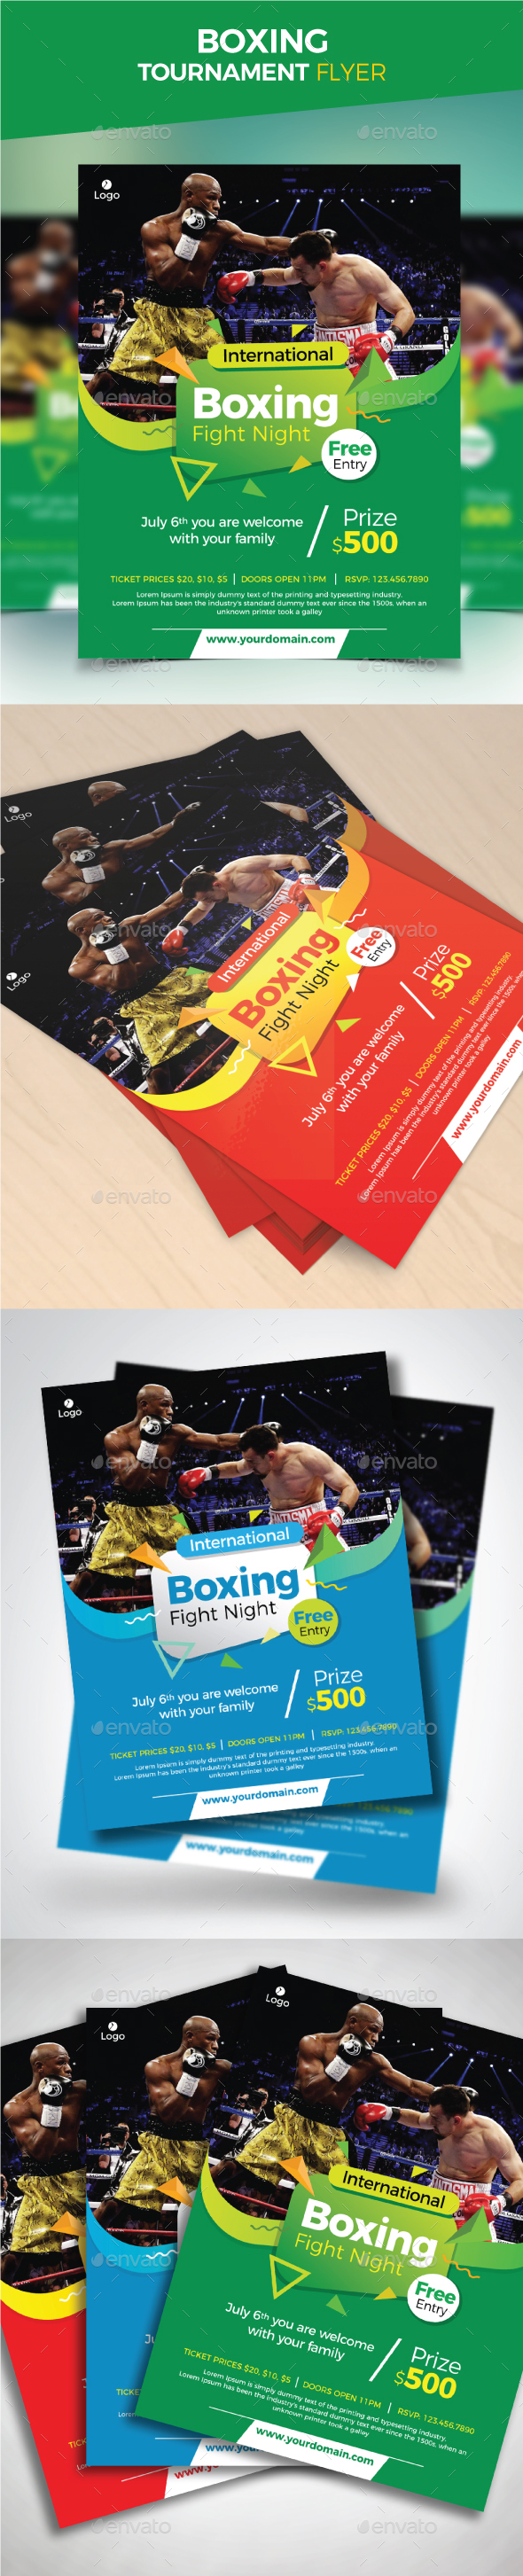 Boxing Tournament Flyer - Sports Events